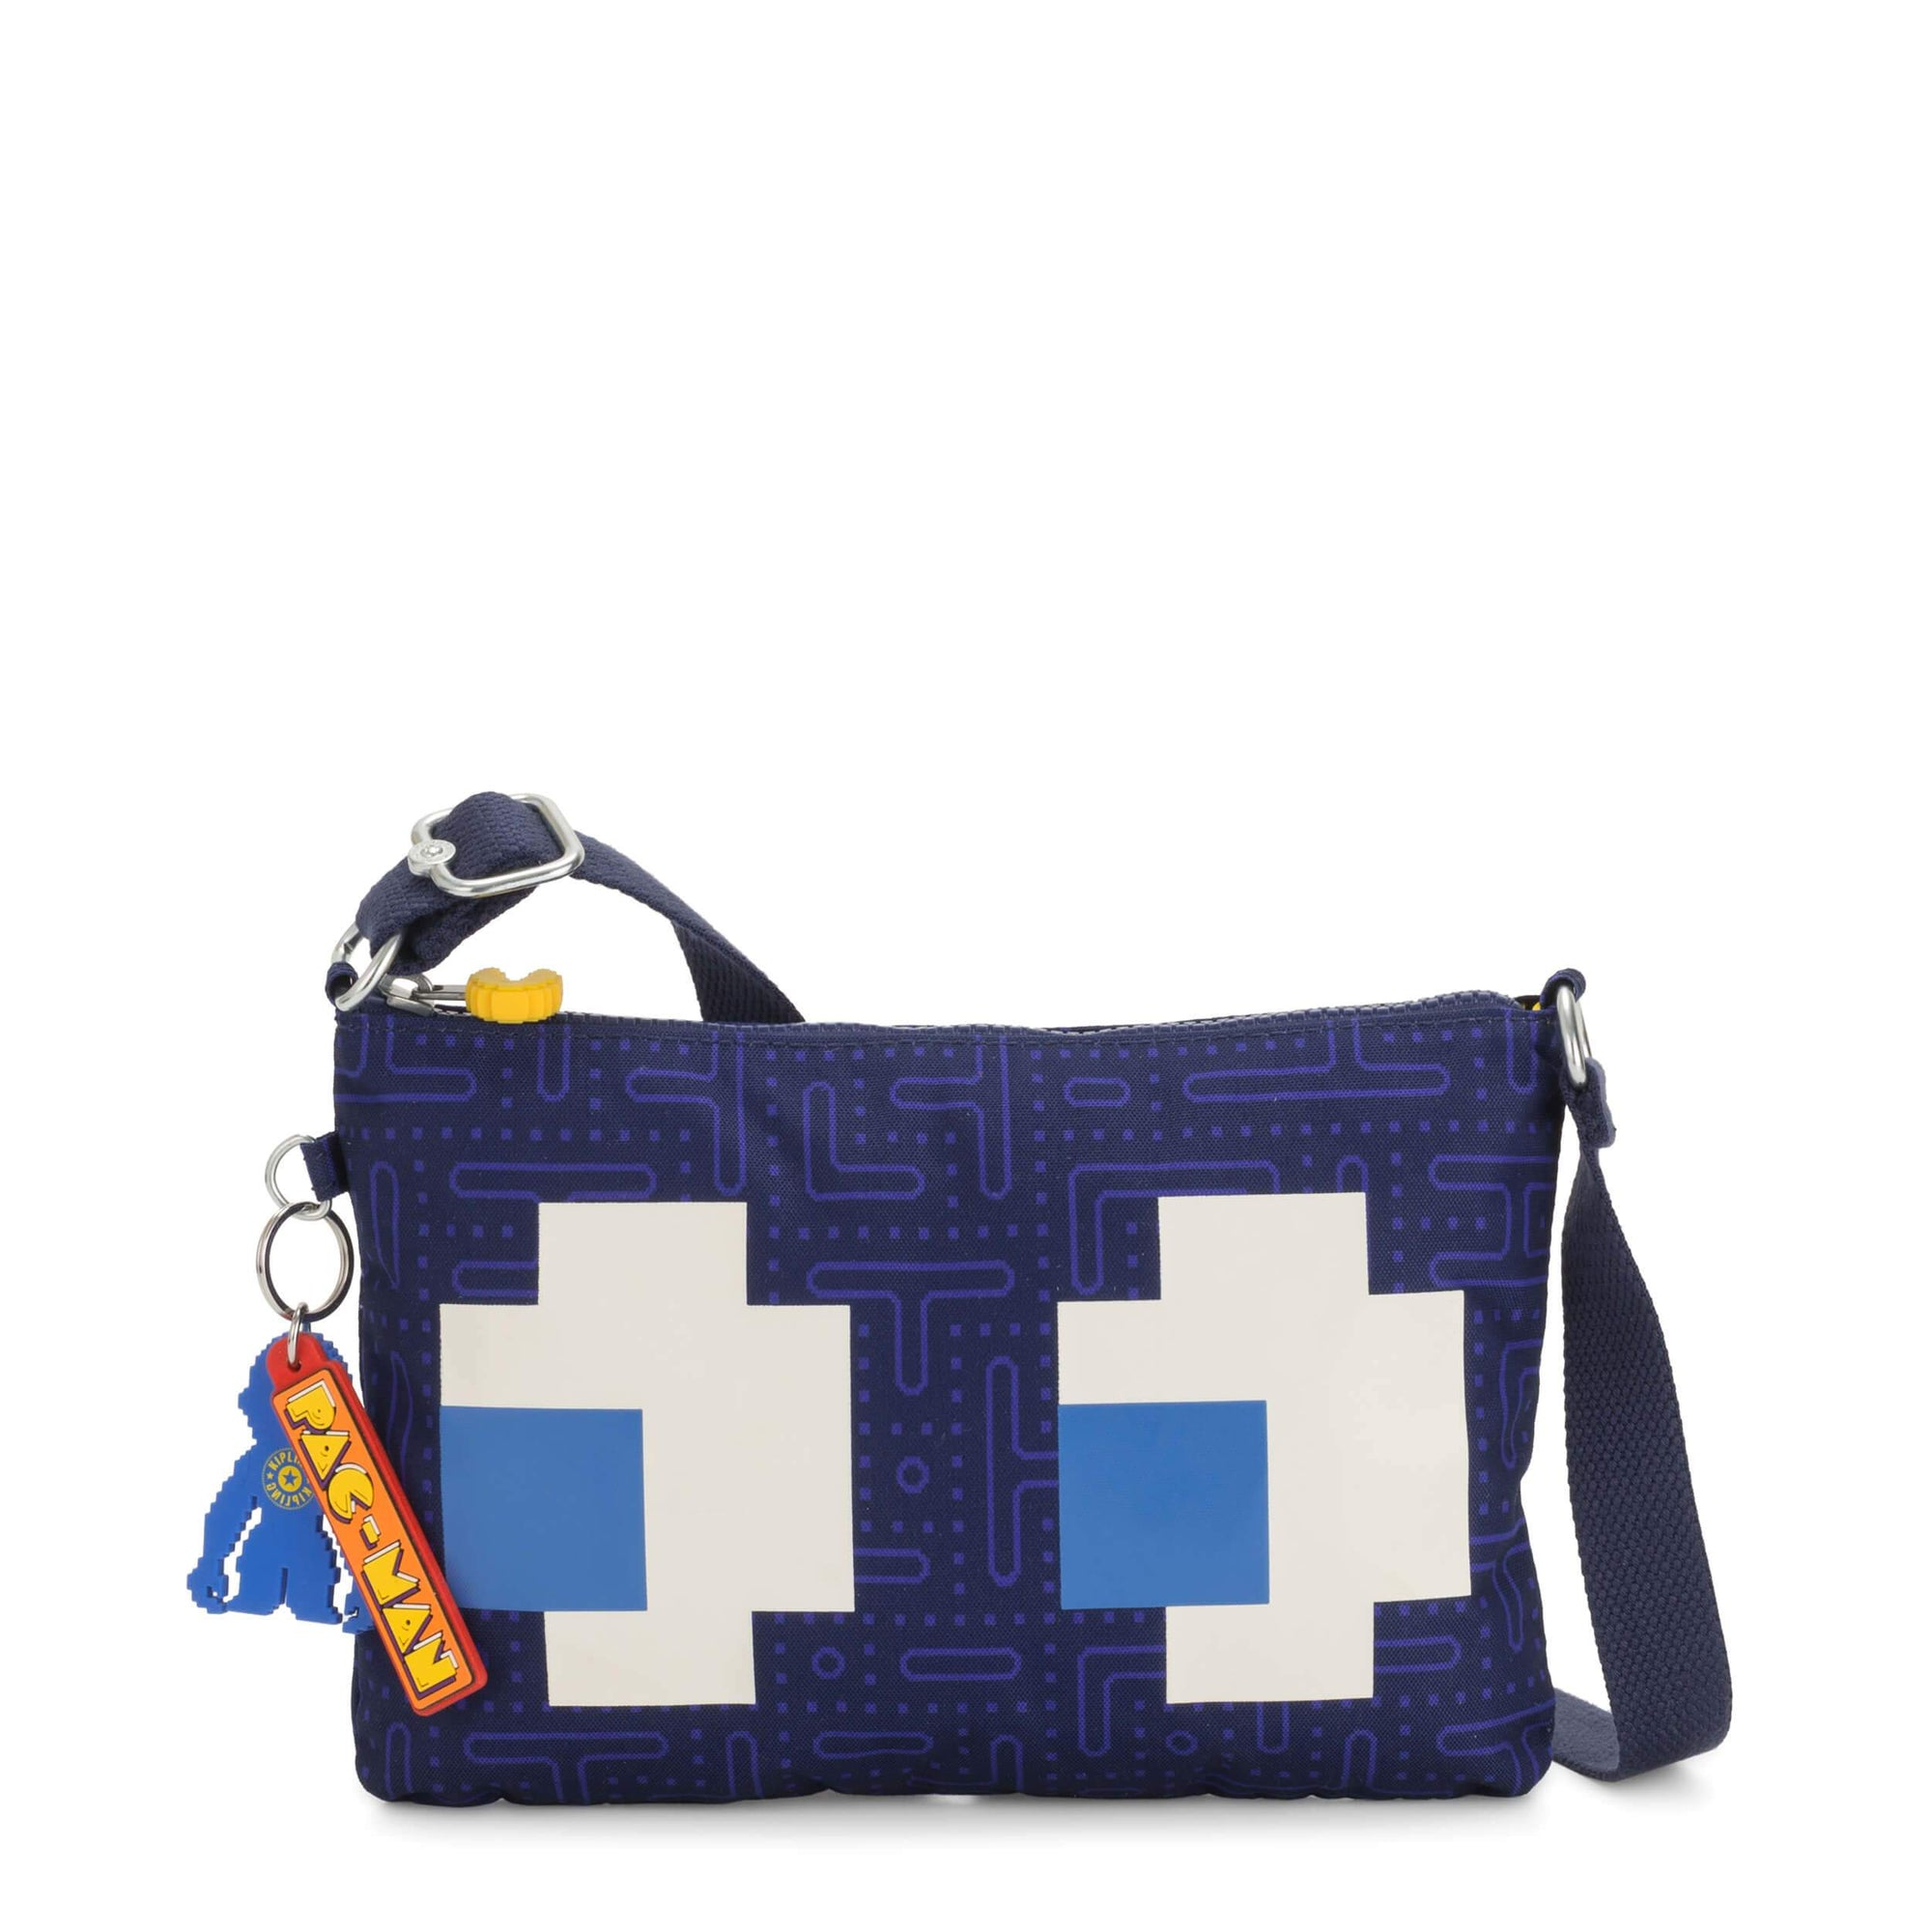 Bolsa Mini Kipling Adria Pac Man Good KI611055J